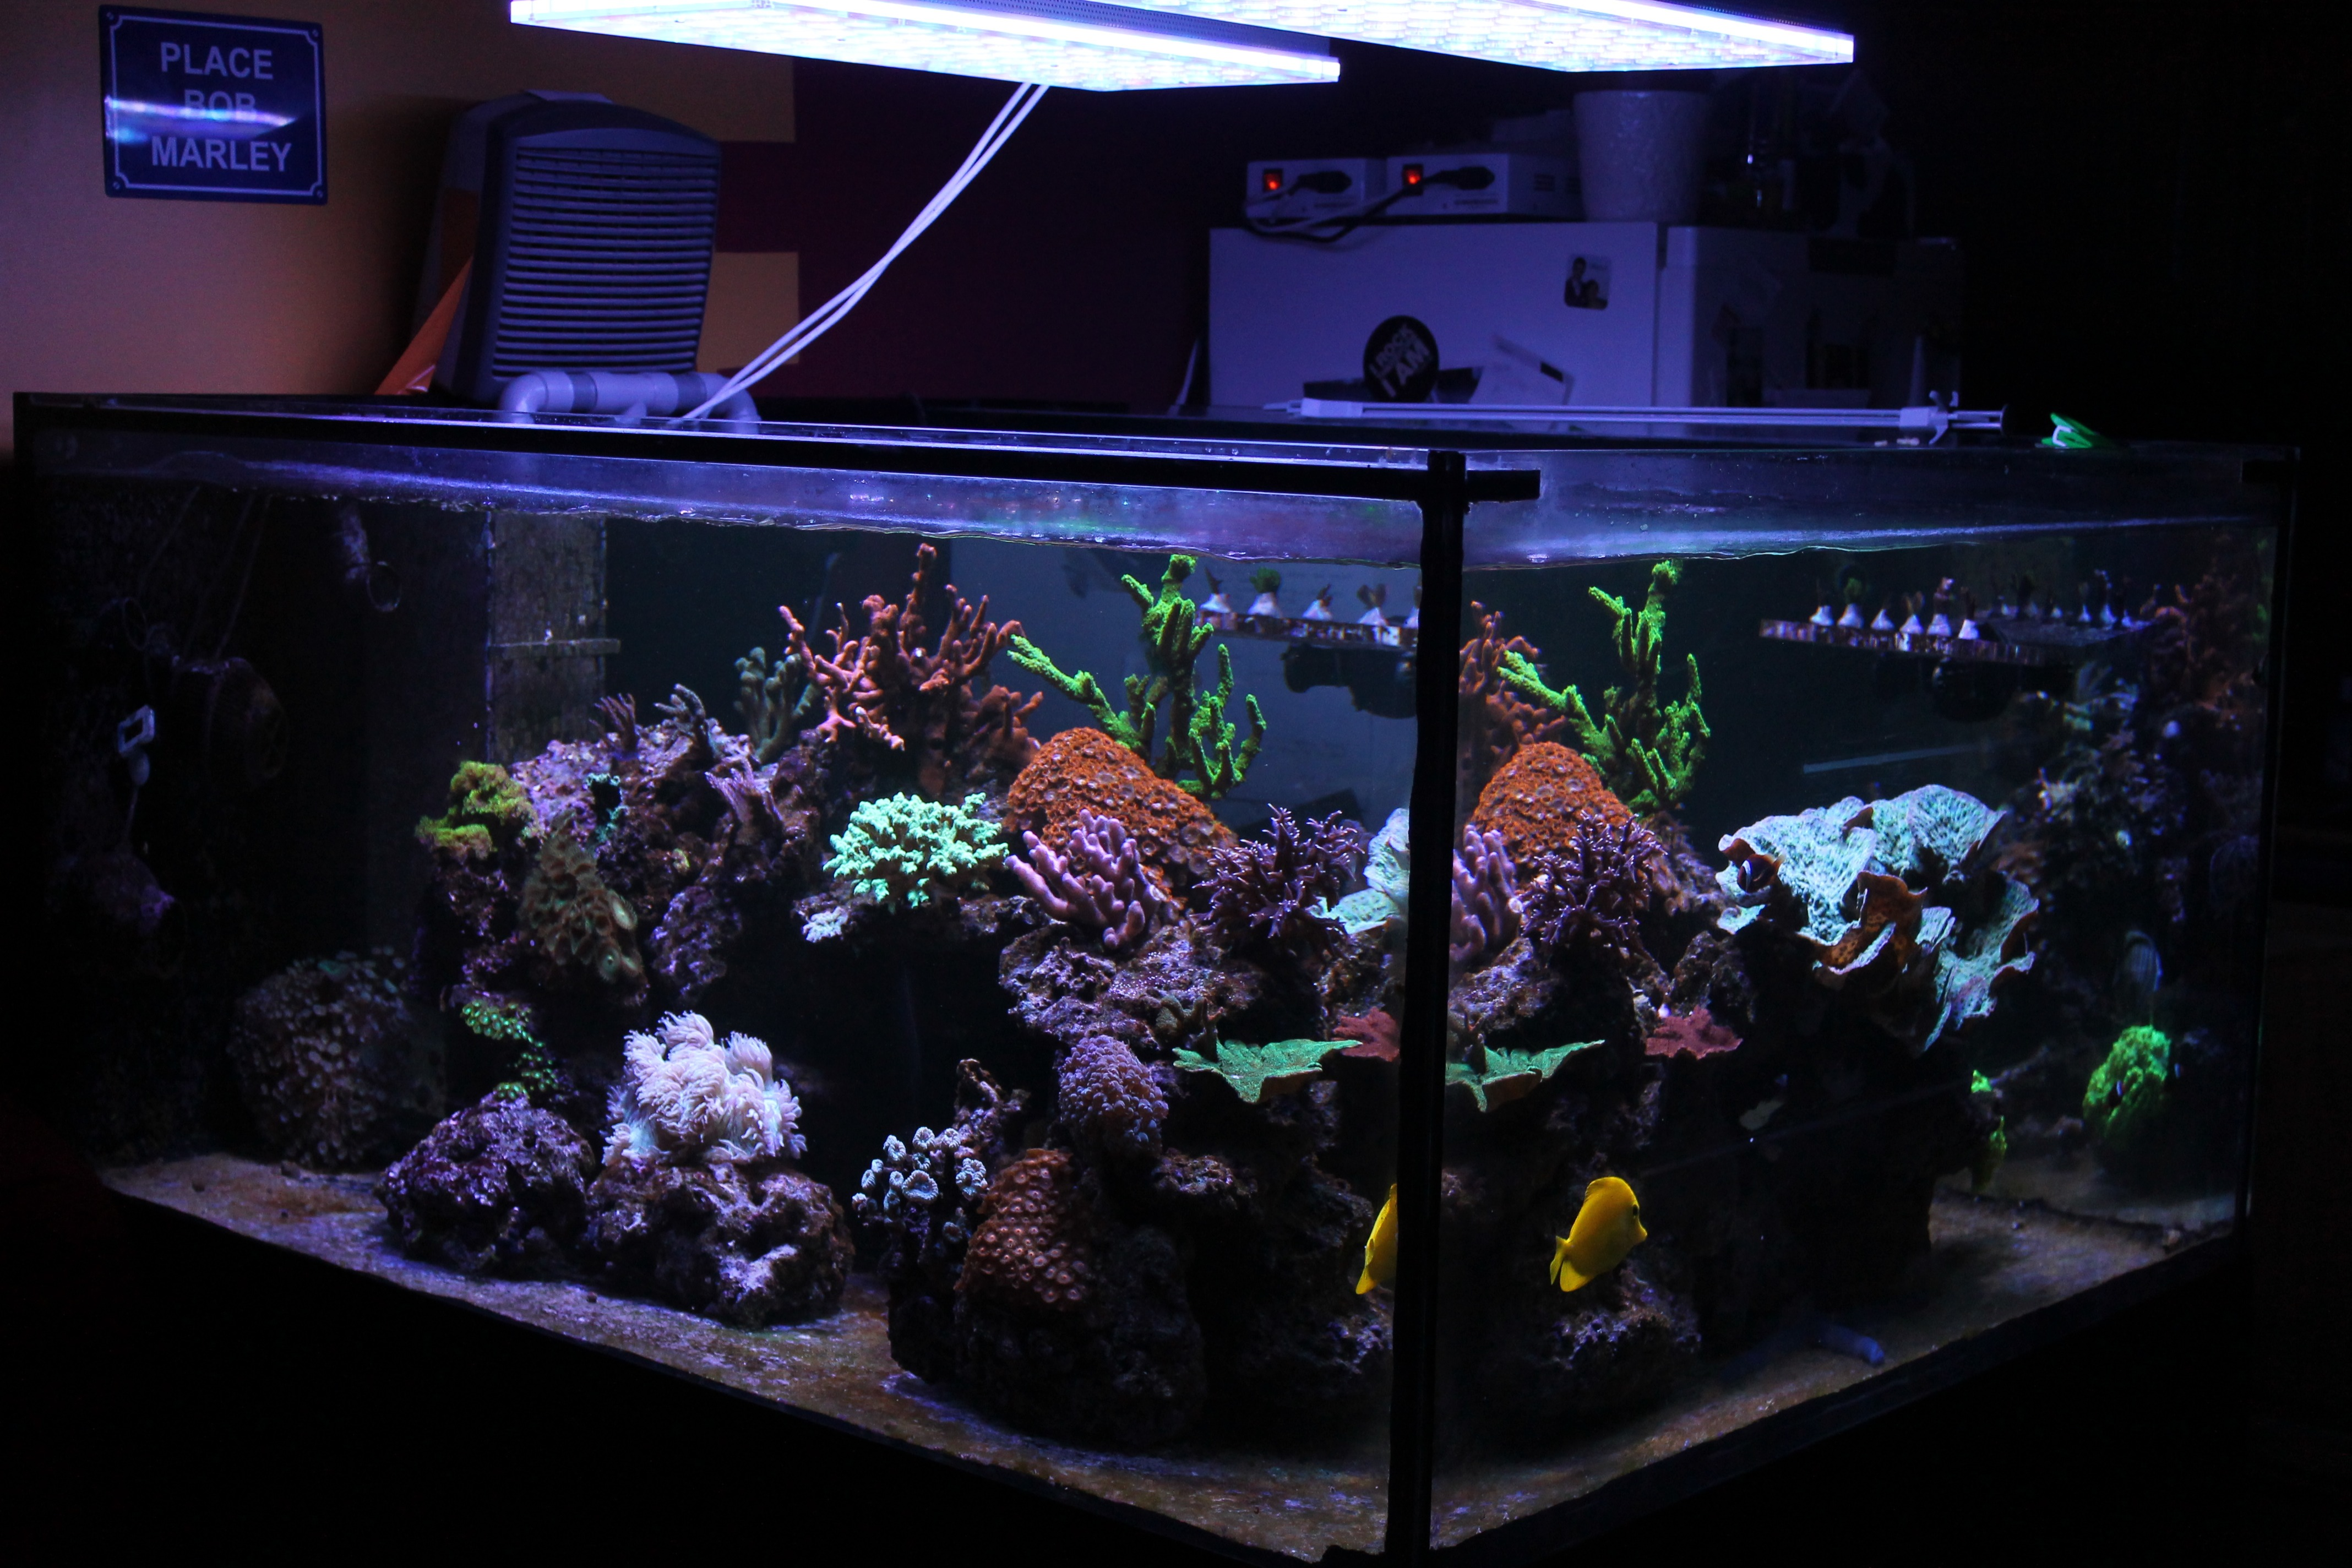 best led aquarium licht f r salzwasser tank frankreich orphek aquarium led beleuchtung. Black Bedroom Furniture Sets. Home Design Ideas